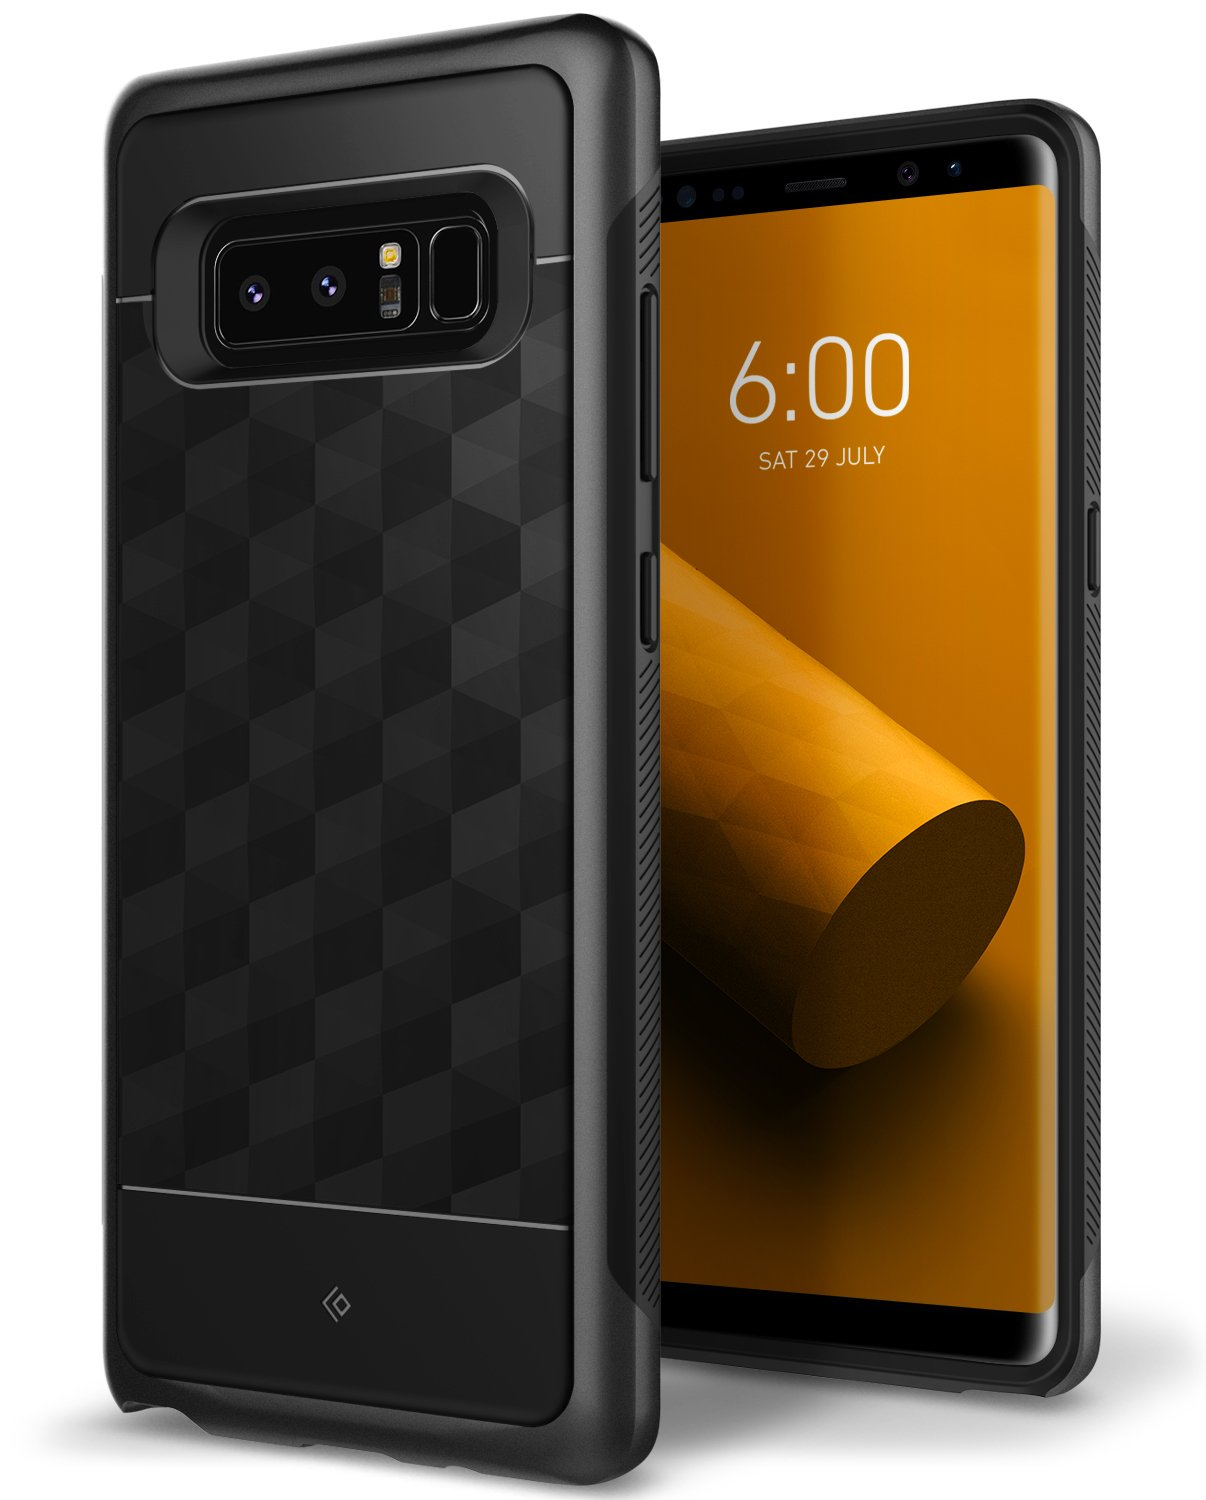 Galaxy Note 8 Case, Caseology [Parallax Series] Slim Protective Dual Layer Textured Cover Secure Grip Geometric Design Samsung Galaxy Note 8 (2017) - Black by Caseology